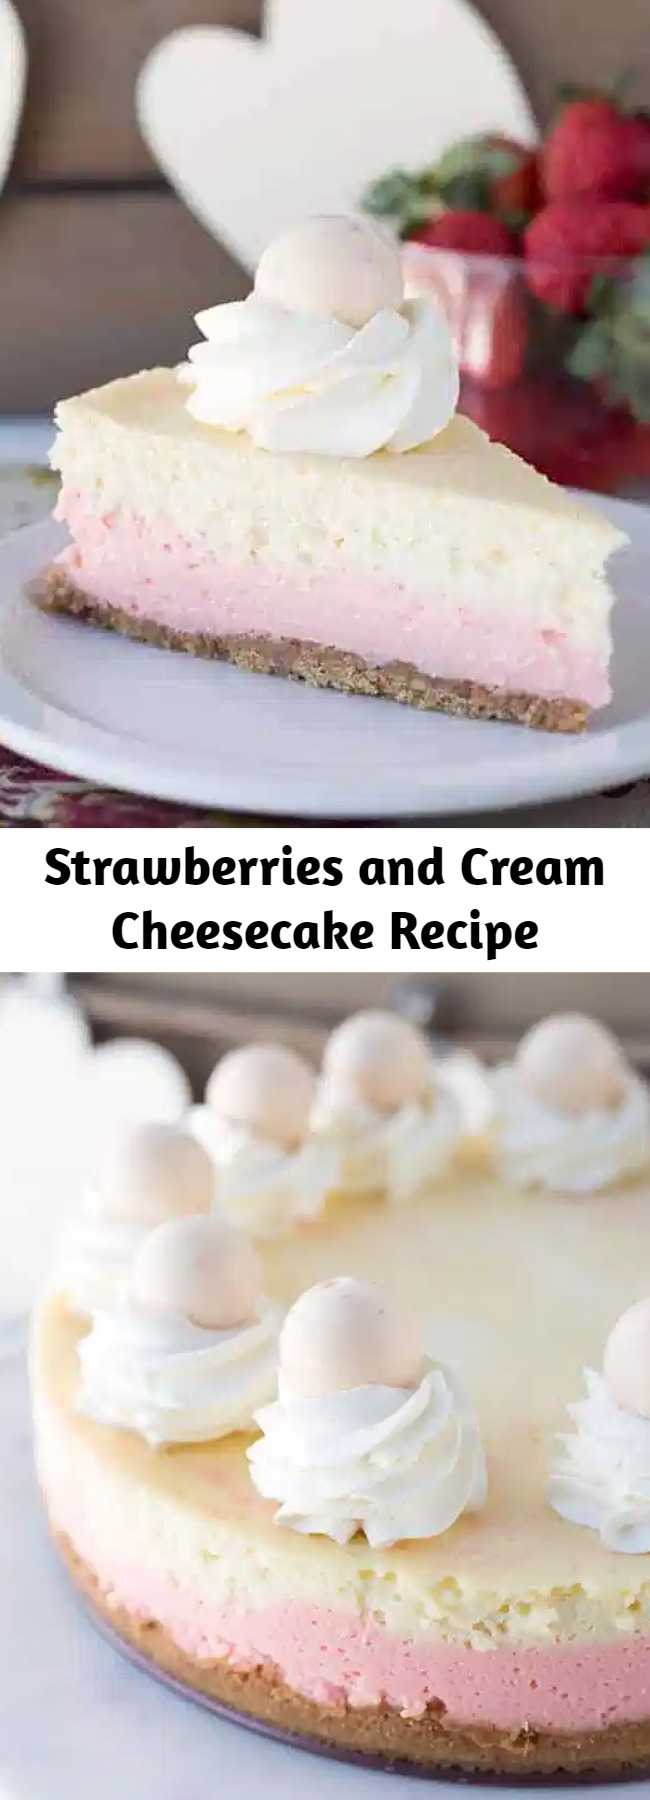 Strawberries and Cream Cheesecake Recipe - This cheesecake is packed full of flavor! There's a cookie crust, pink strawberry cheesecake layer, vanilla cheesecake layer, strawberries and cream truffles baked inside the cheesecake and topped with whipped cream and more strawberries and cream truffles! This is the perfect Valentine's Day cheesecake! #cheesecake #cheesecakerecipes #dessertrecipes #strawberries